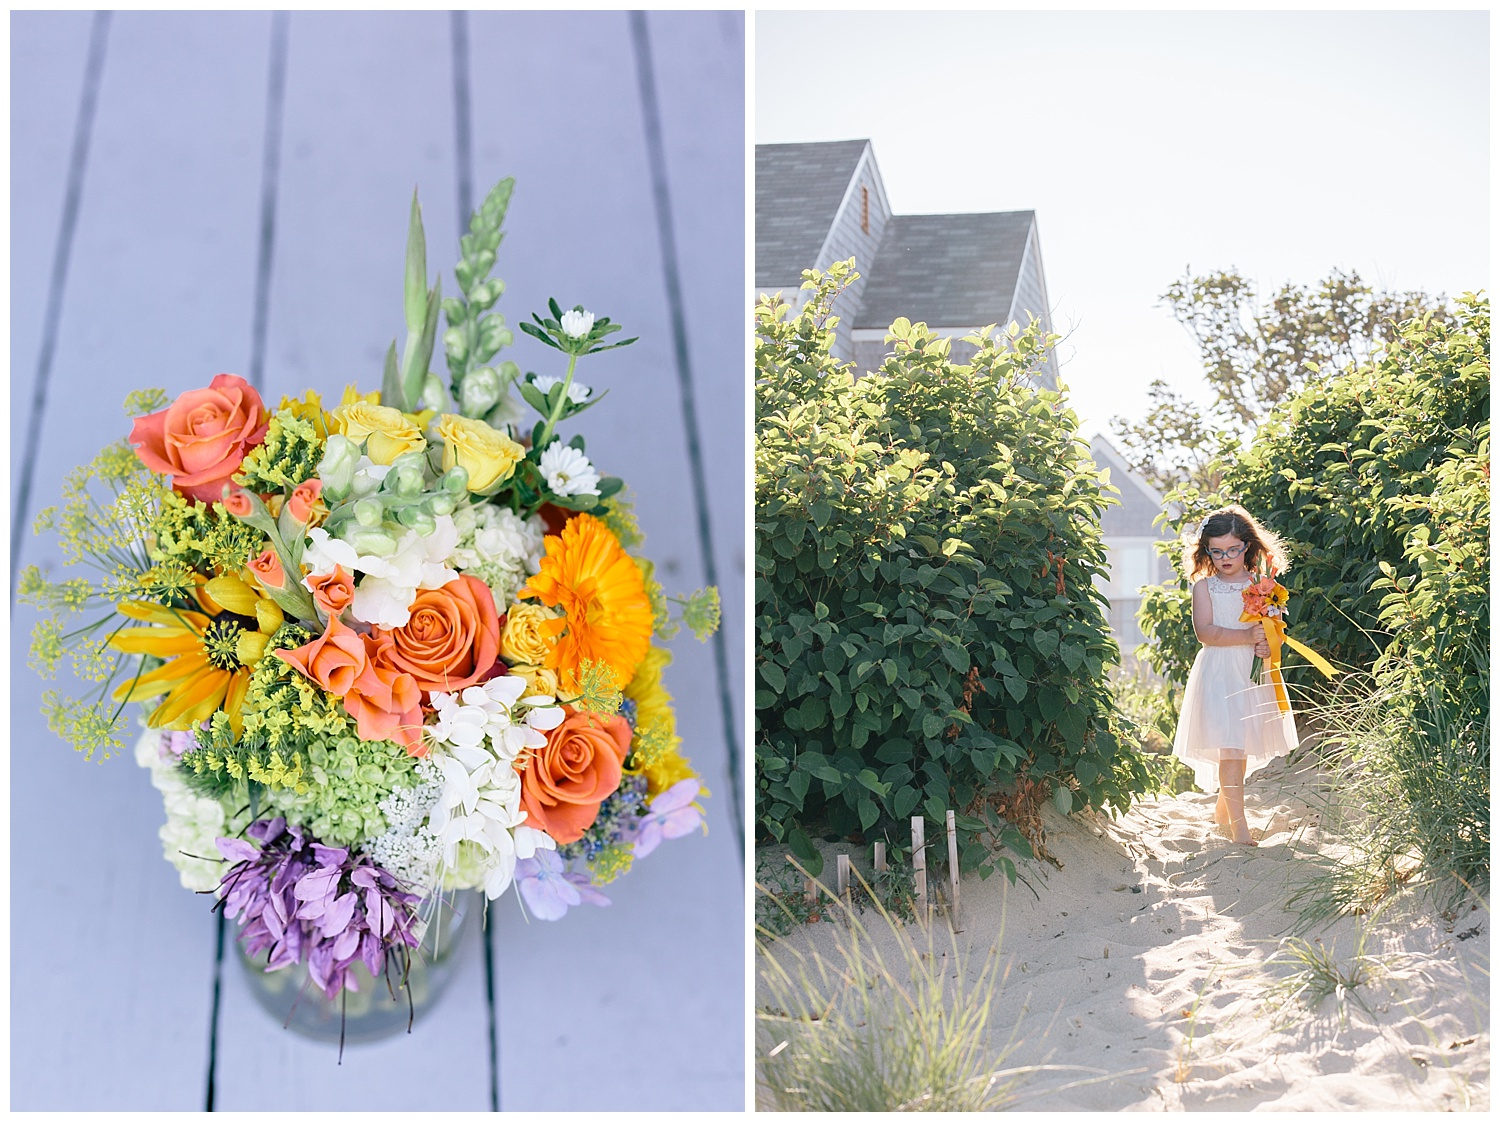 emily-belson-photography-nantucket-elopement-06.jpg